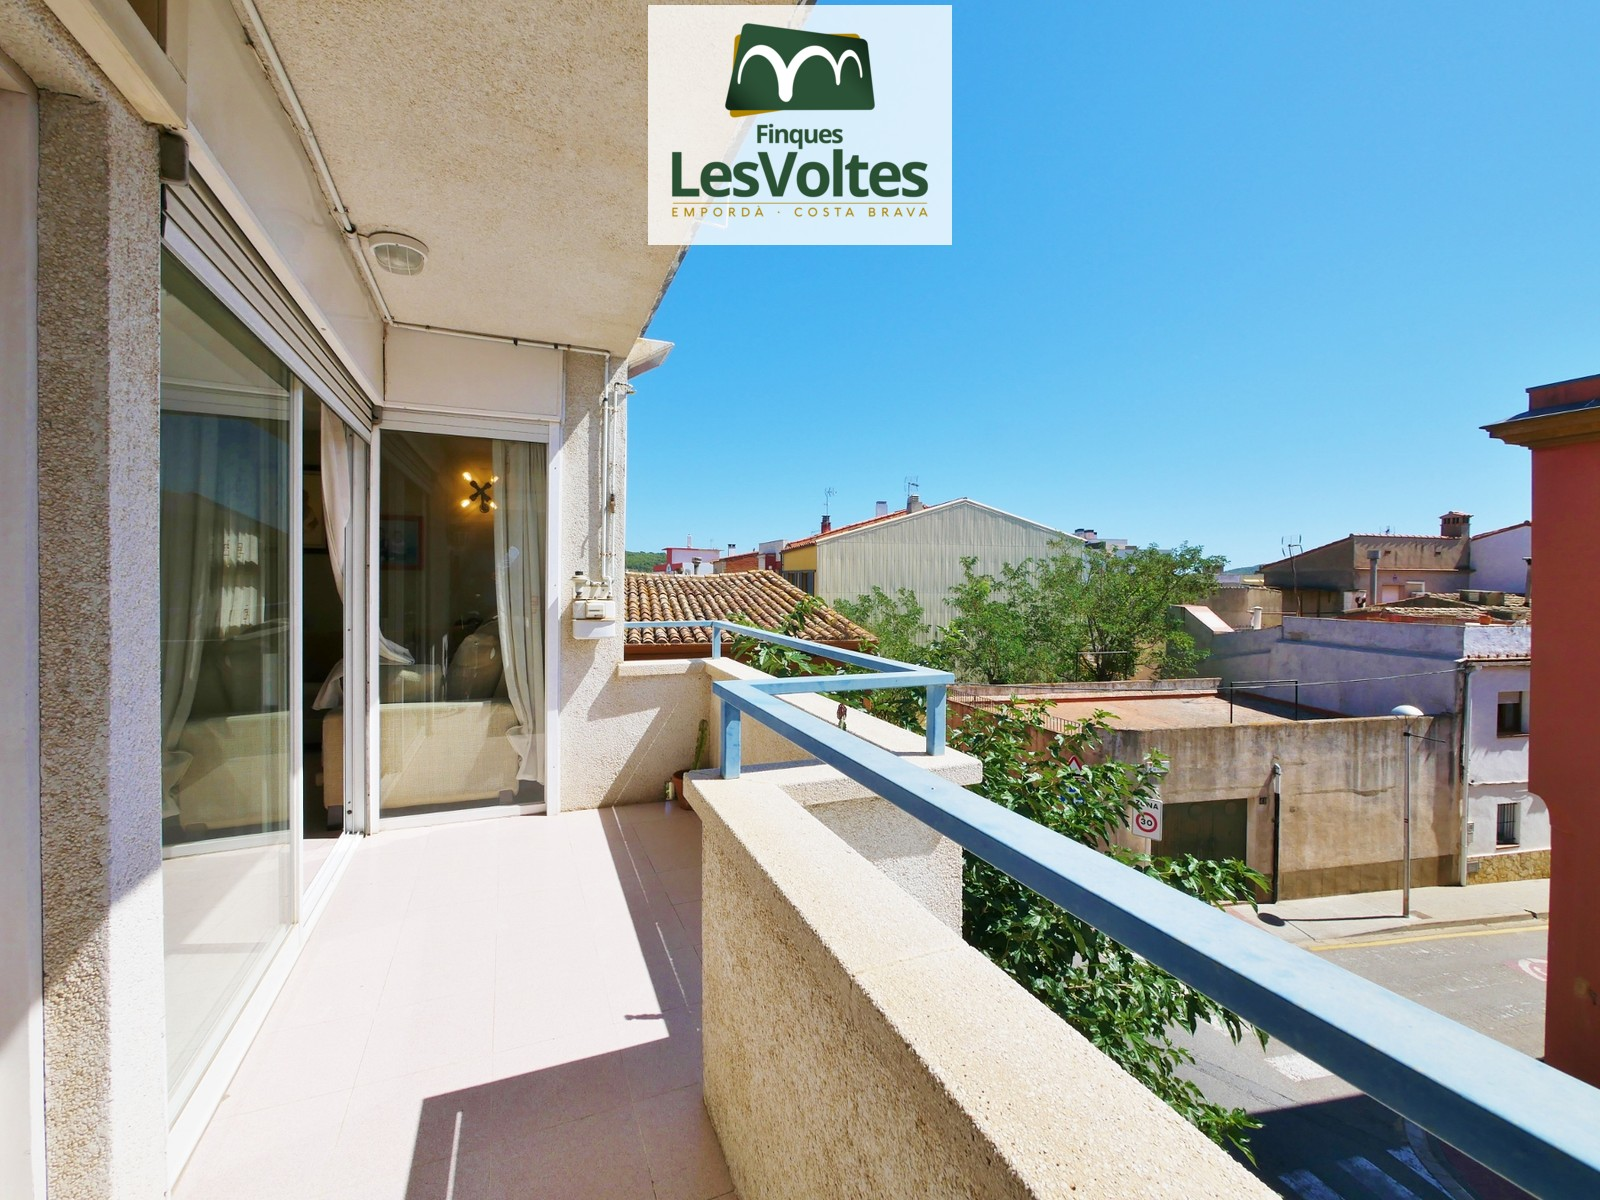 4 BEDROOM DUPLEX PENTHOUSE WITH TWO PARKING SPACES AND TERRACE FOR SALE IN THE CENTER OF PALAFRUGELL.